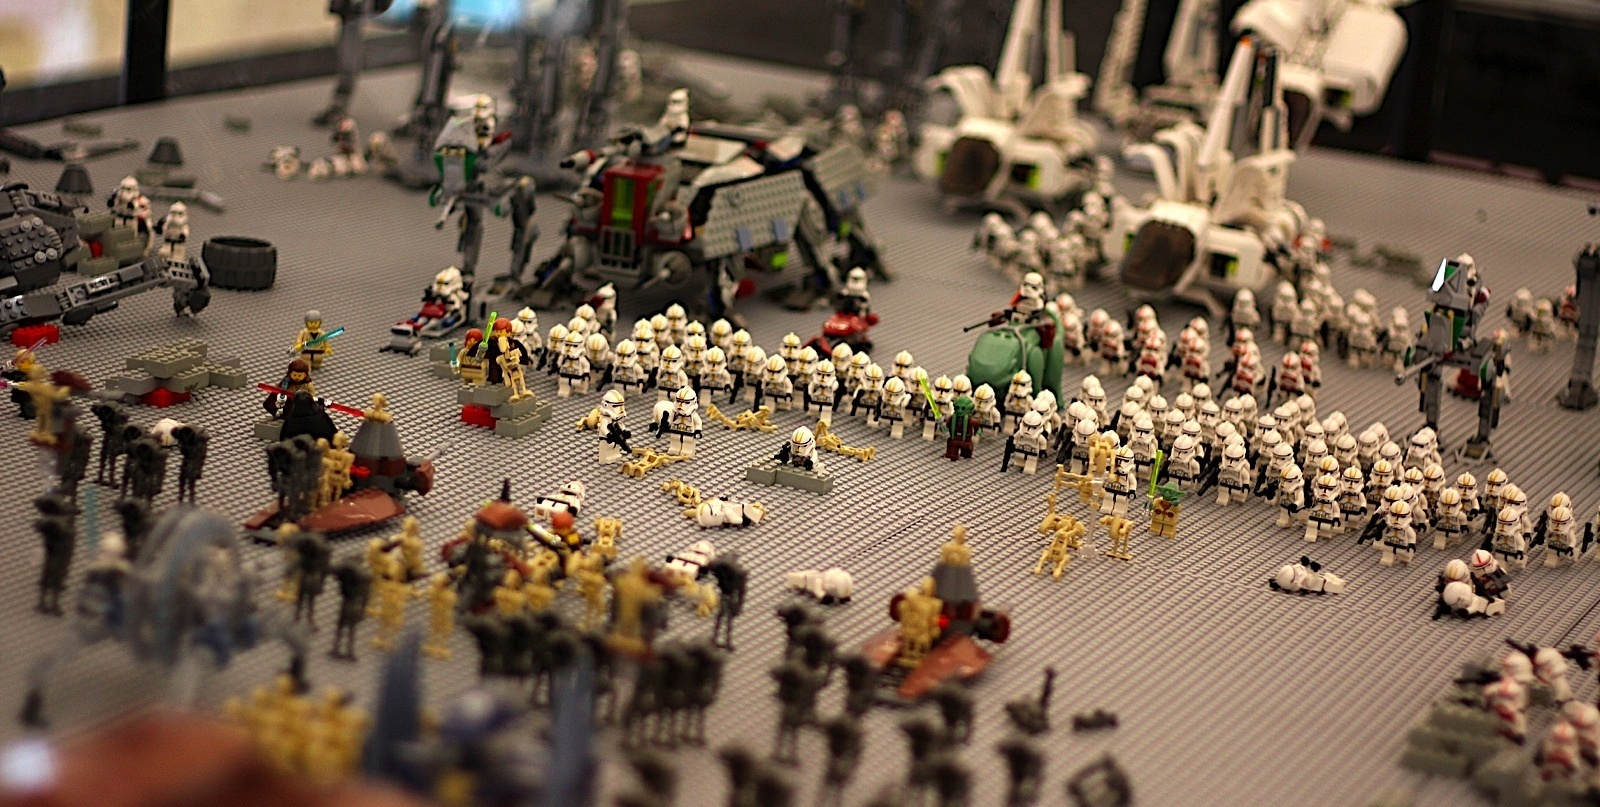 lego stella, star wars war